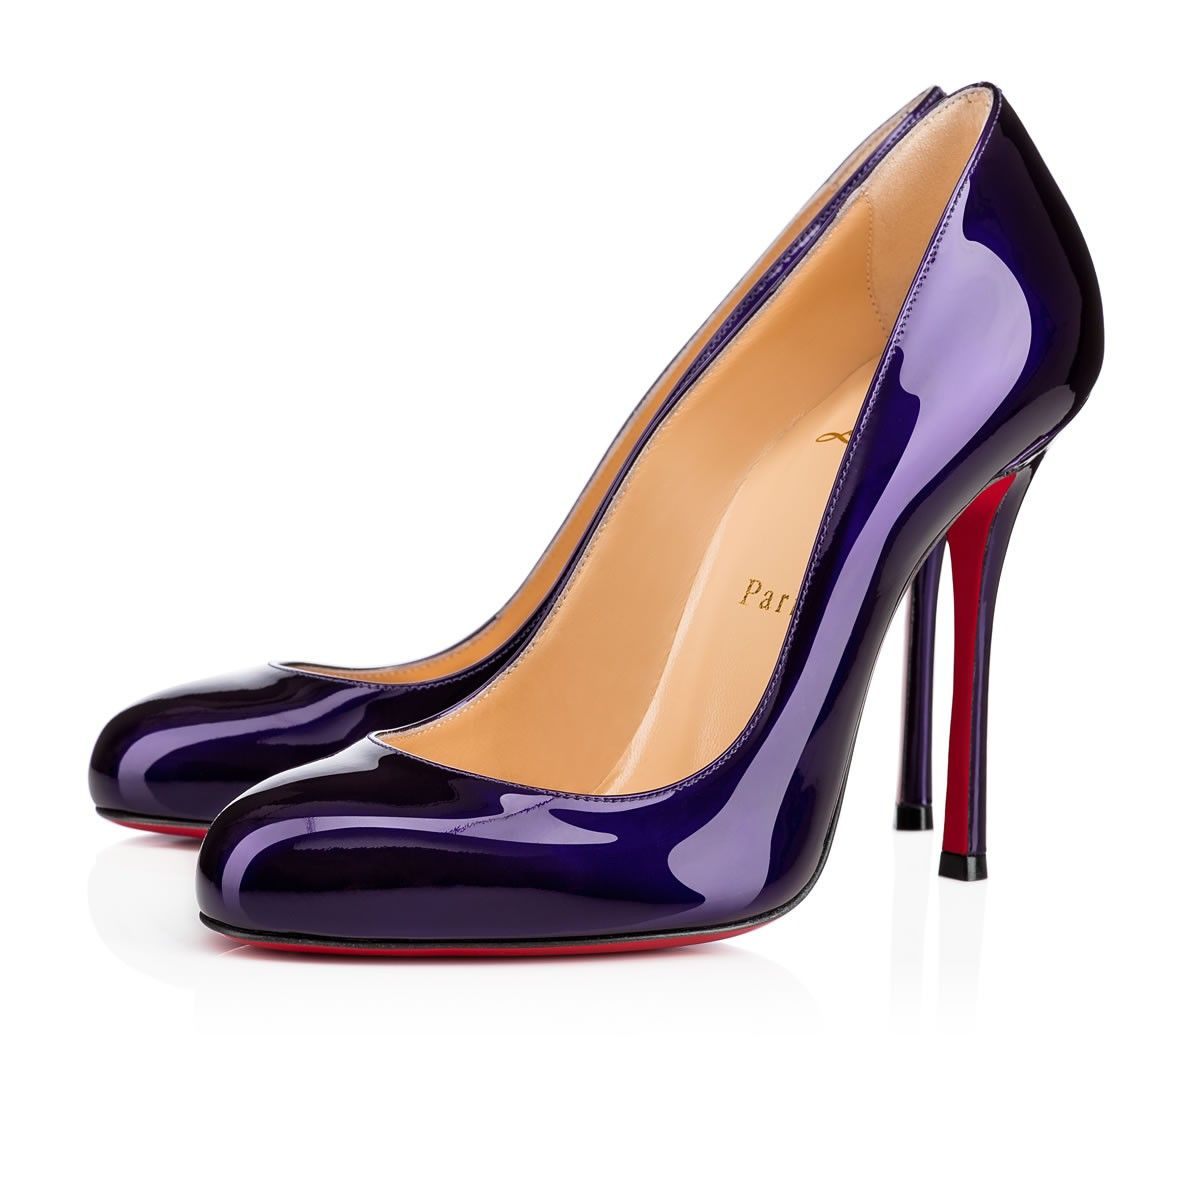 Christian Louboutin Austria Official Online Boutique - FIFETISH GLOSSY  PATENT 100 Electro Patent calfskin available online. Discover more Women  Shoes by ...